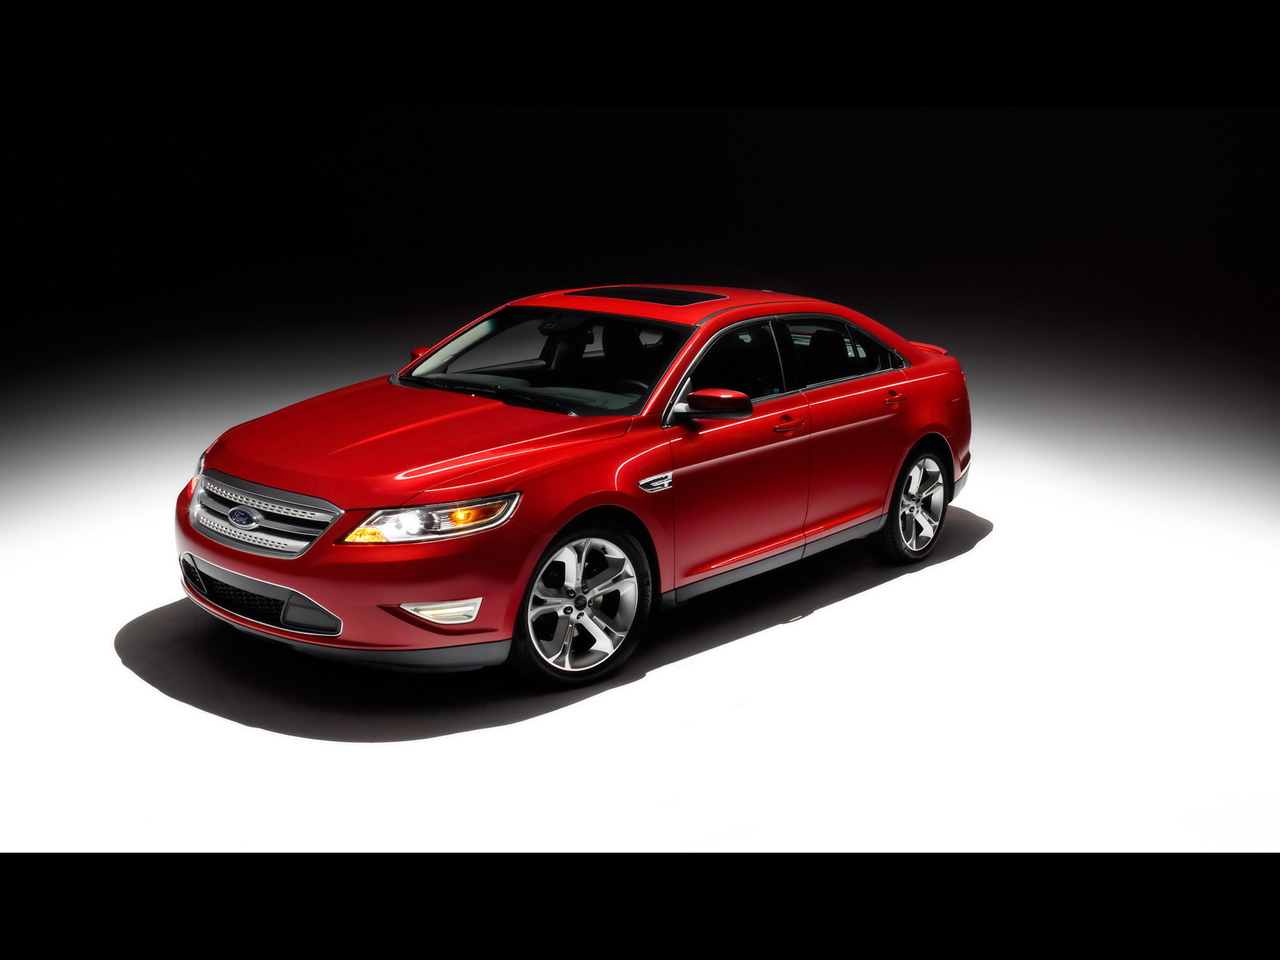 2010 Ford Taurus Wallpapers   500 Collection HD Wallpaper 1280x960